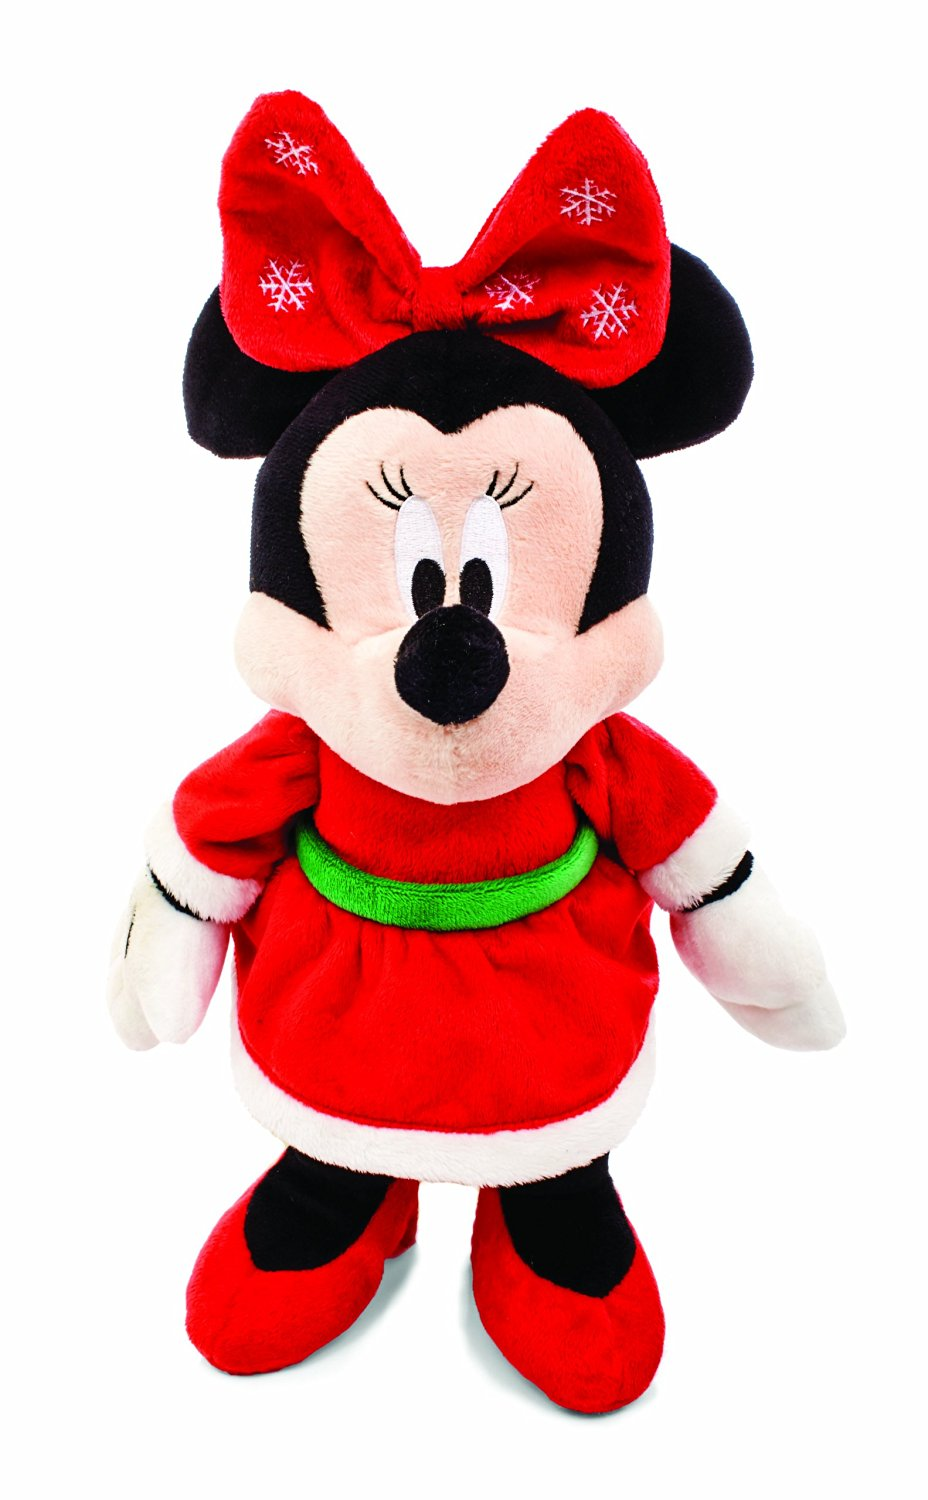 Disney Baby Minnie Mouse Holiday Plush